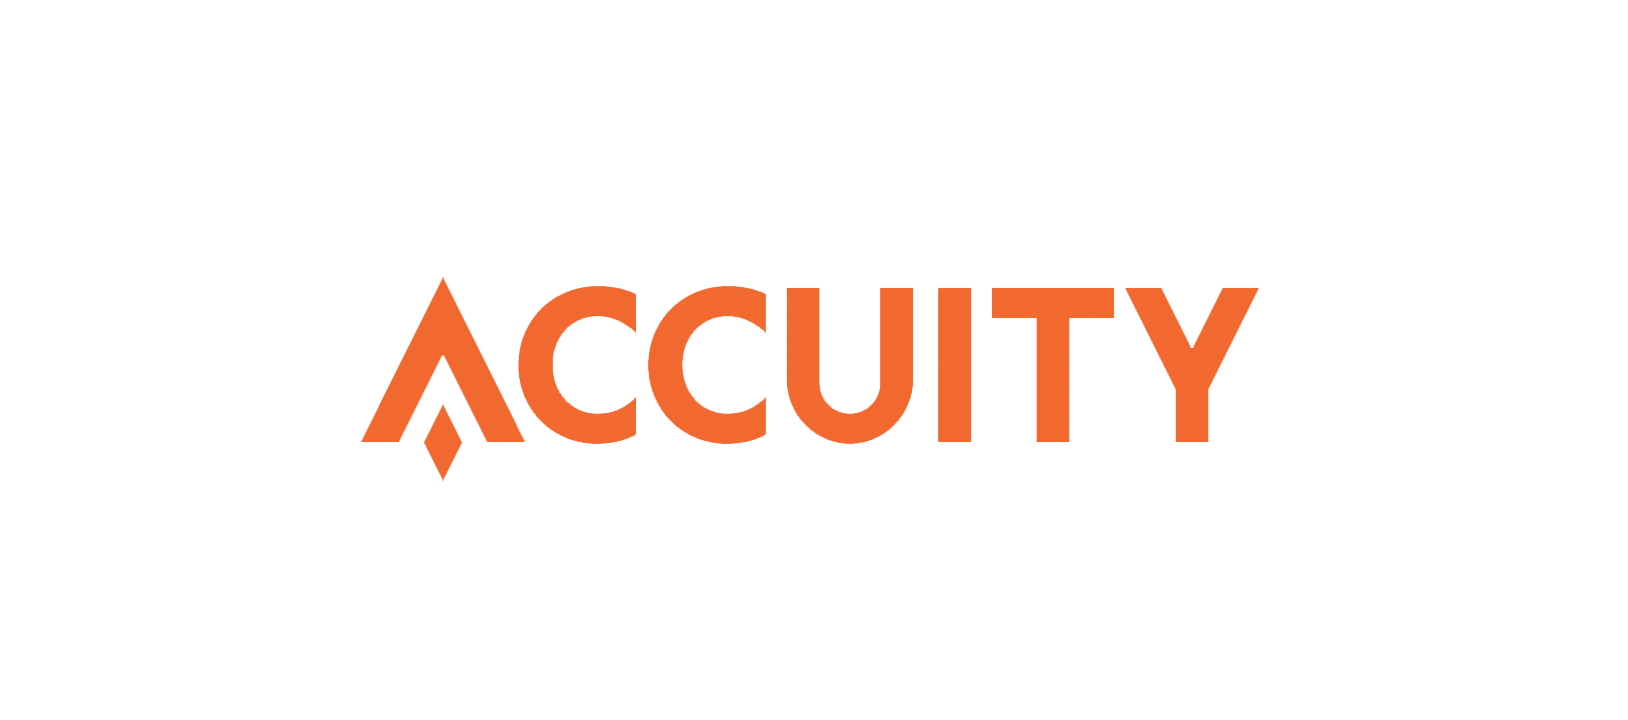 Accuity Releases Bankers Almanac Enhanced Due Diligence to Automate Risk Assessments for Financial Counterparty KYC